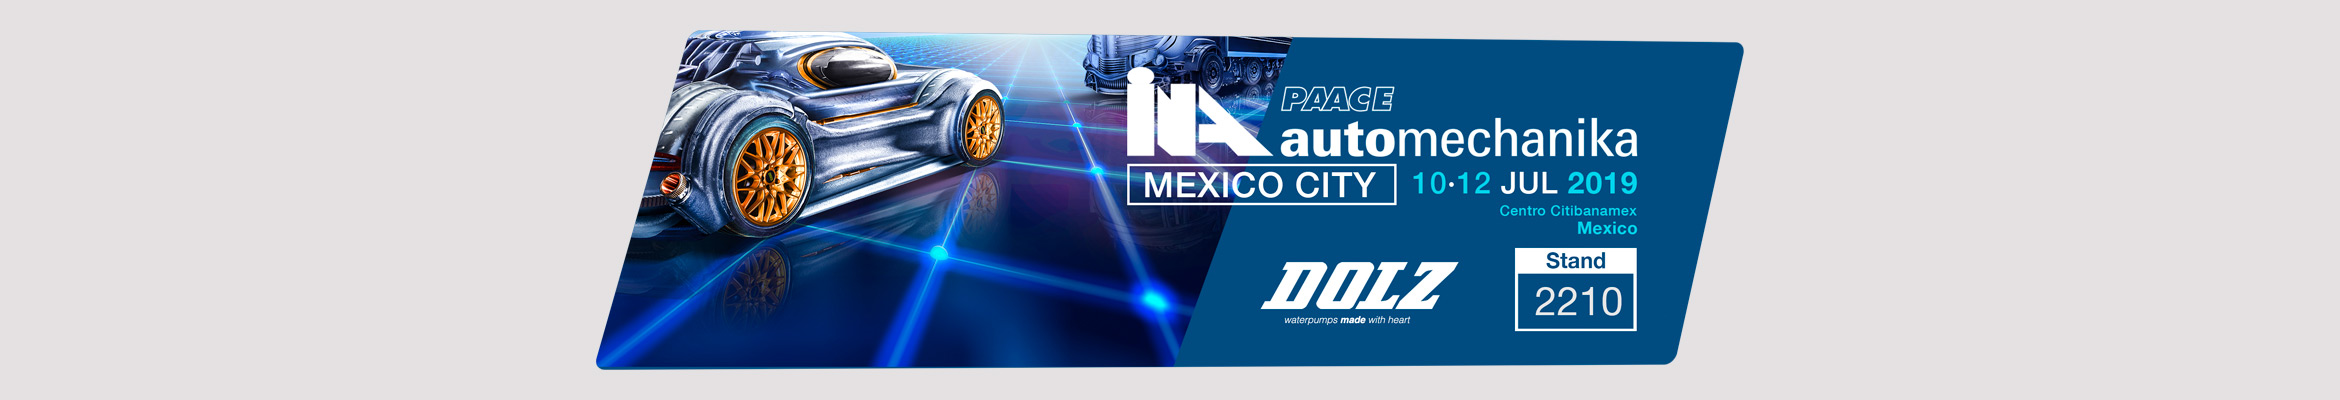 automechanika-mexico